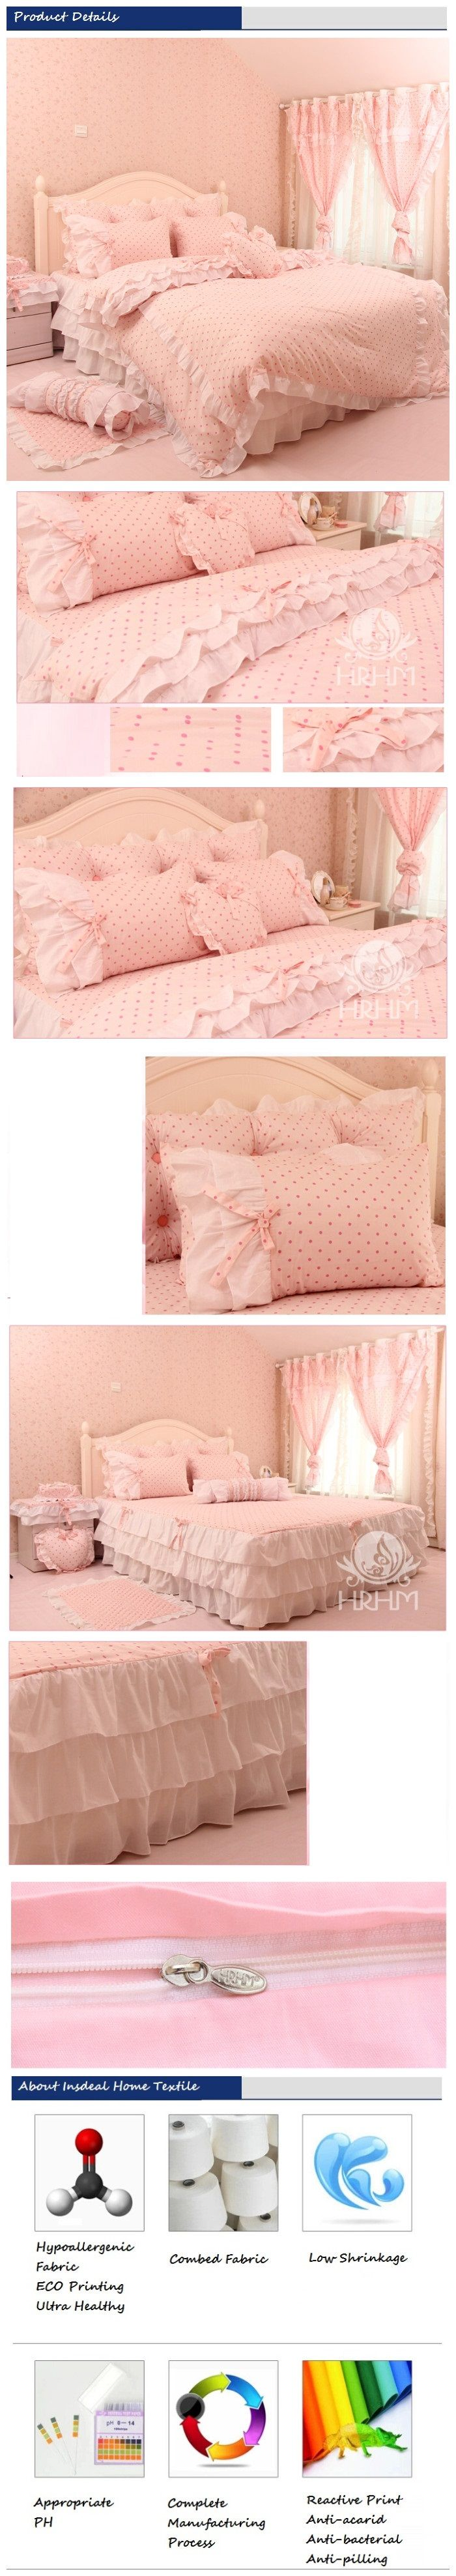 Romantic Korean Ruffle Bedding Set Pink Polka Dot Duvet Cover Set Elegant Girls Bedding Set